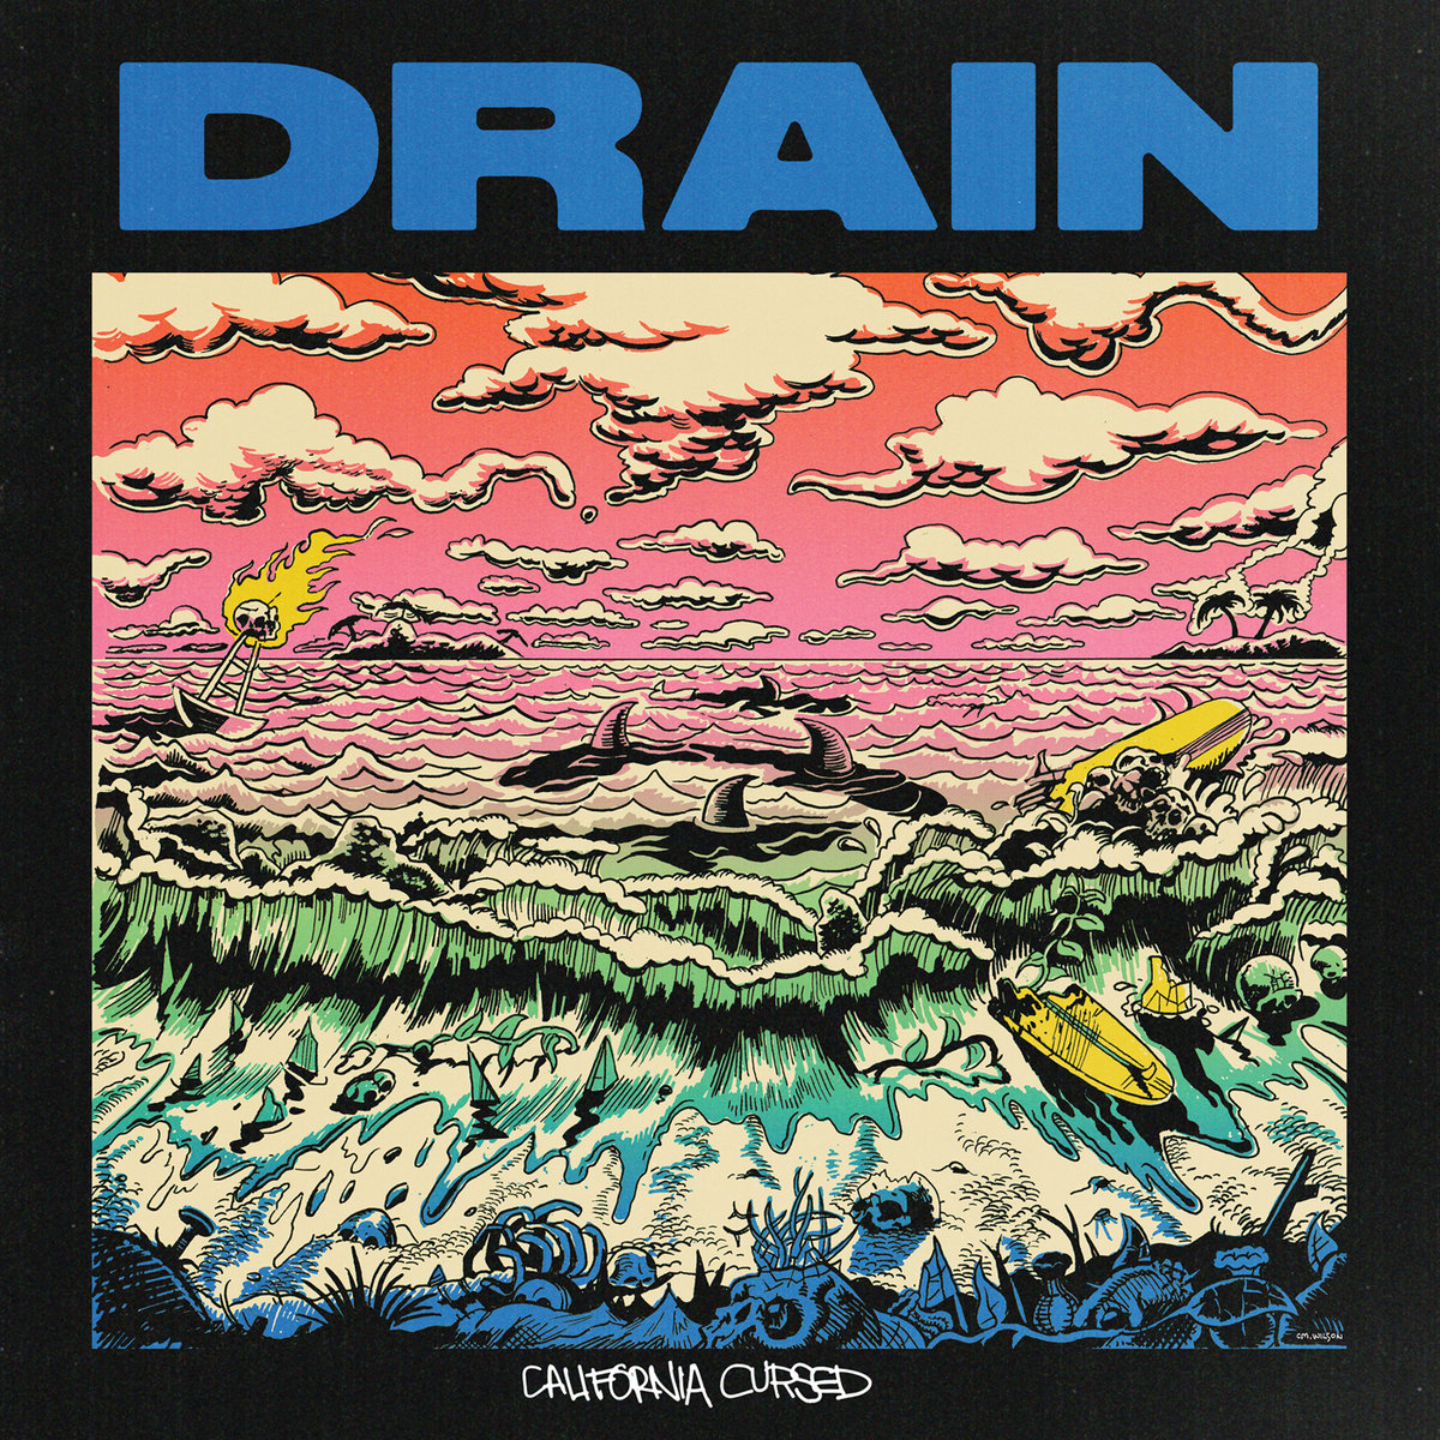 DRAIN - California Cursed LP Yellow Vinyl